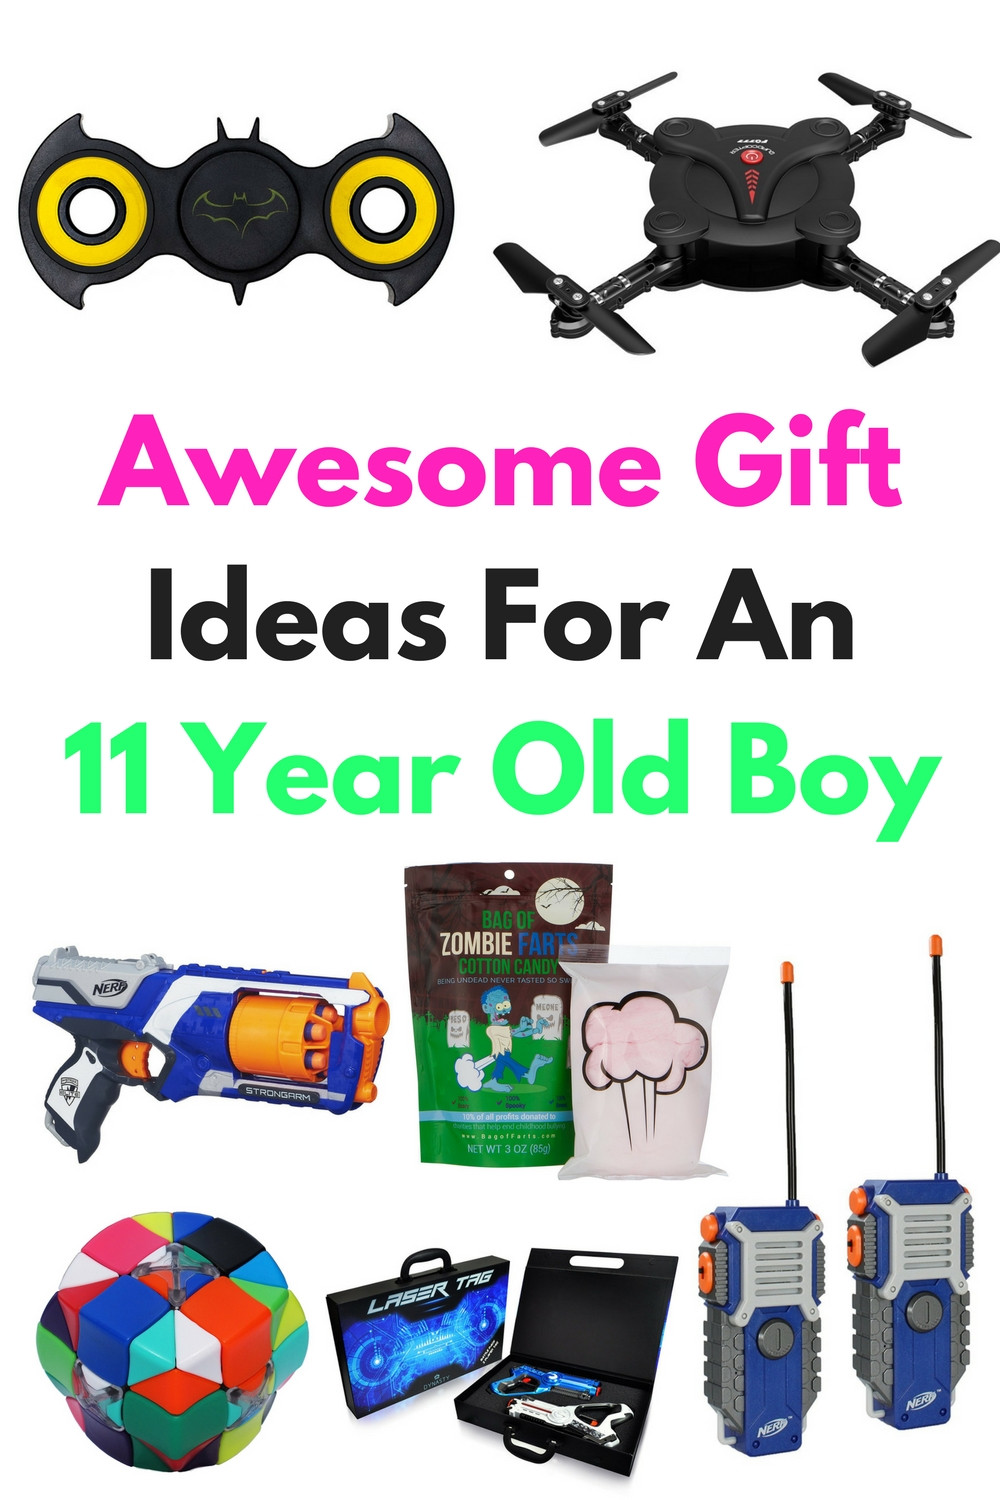 Gift Ideas For 11 Year Old Boys  Awesome Gift Ideas For An 11 Year Old Boy